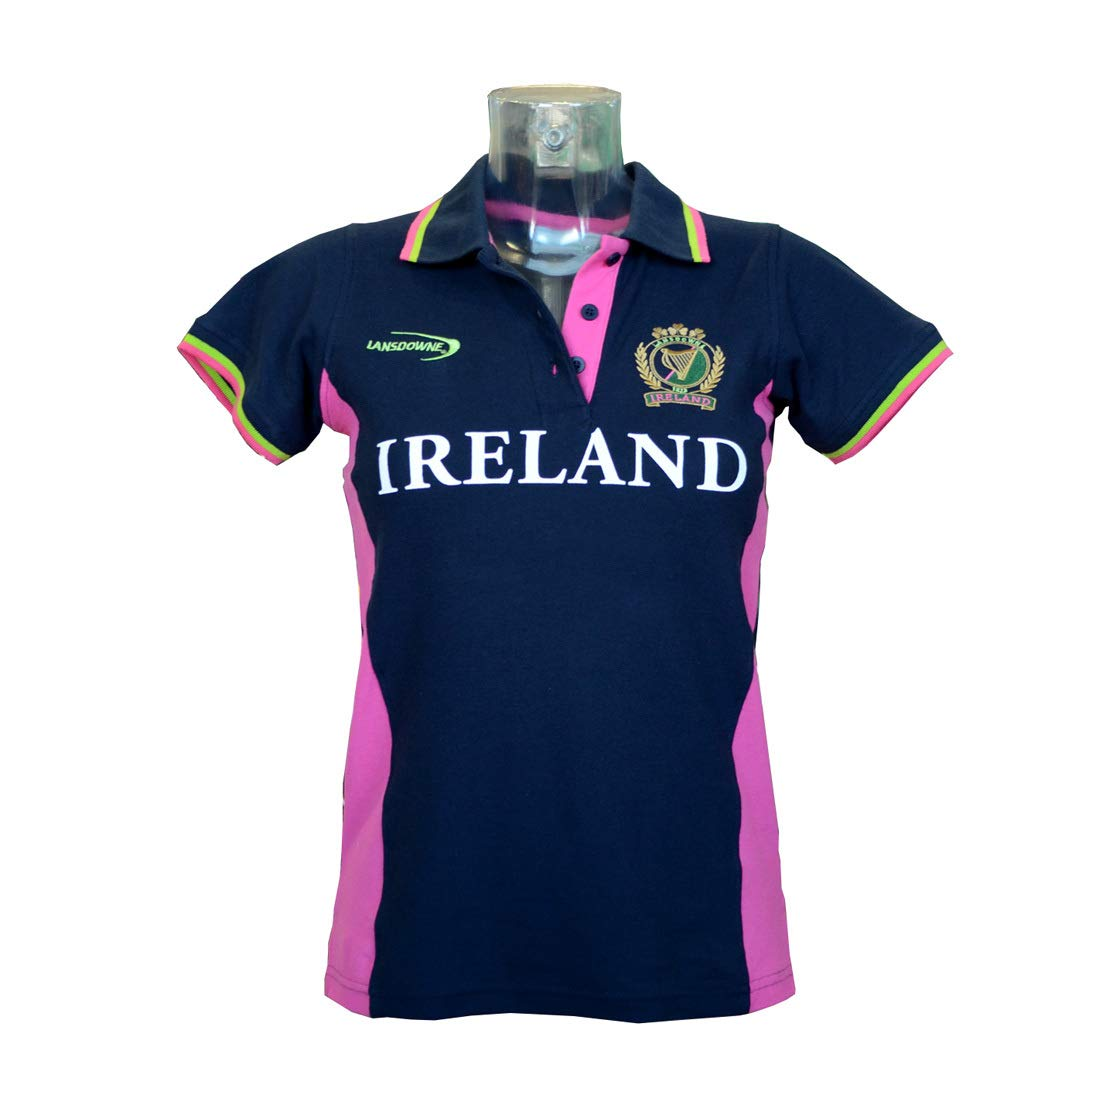 Ladies Fitted Short Sleeved Rugby Shirt with Pink & Green Stipes, Navy colour Navy Small